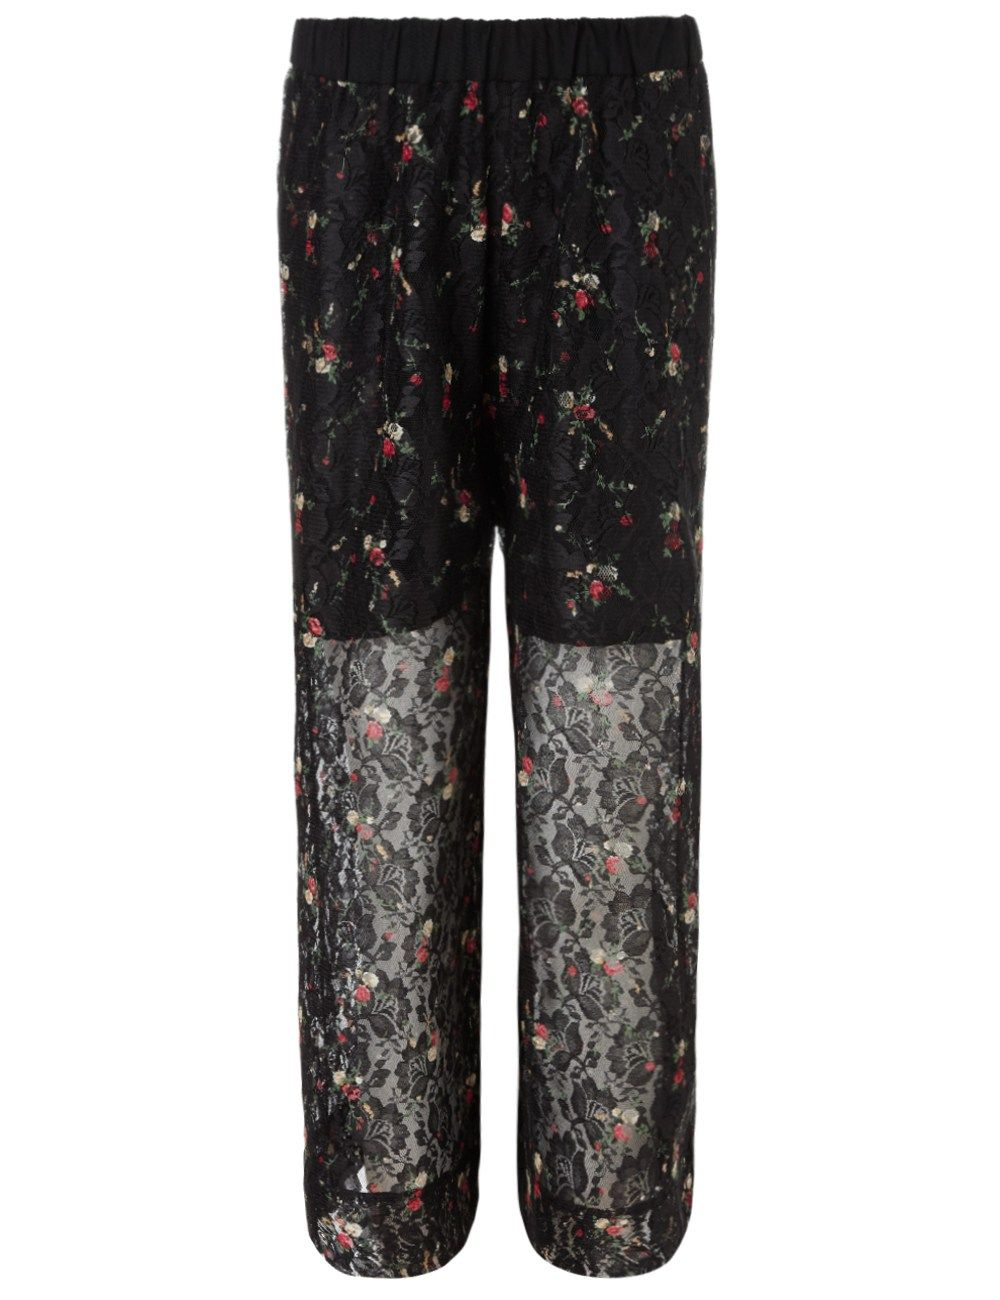 Black Lace Wide Leg Trousers | Antonio Marras | Avenue32